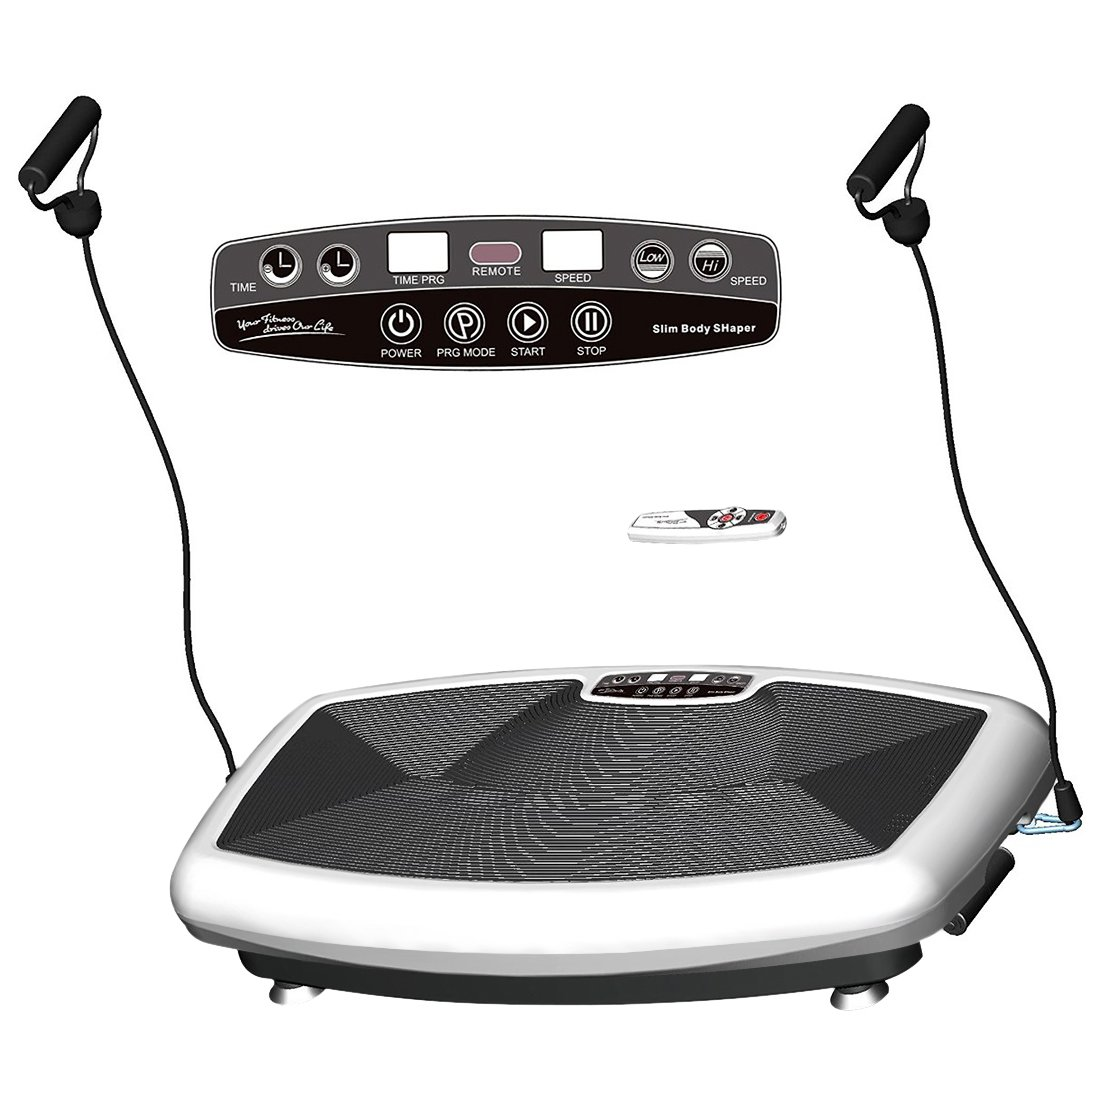 HEALTH LINE MASSAGE PRODUCTS 330LB Vibration Plate Workout Machine Vibration Platform Body Shape Vibration Exercise Machine with Two Bands and Remote